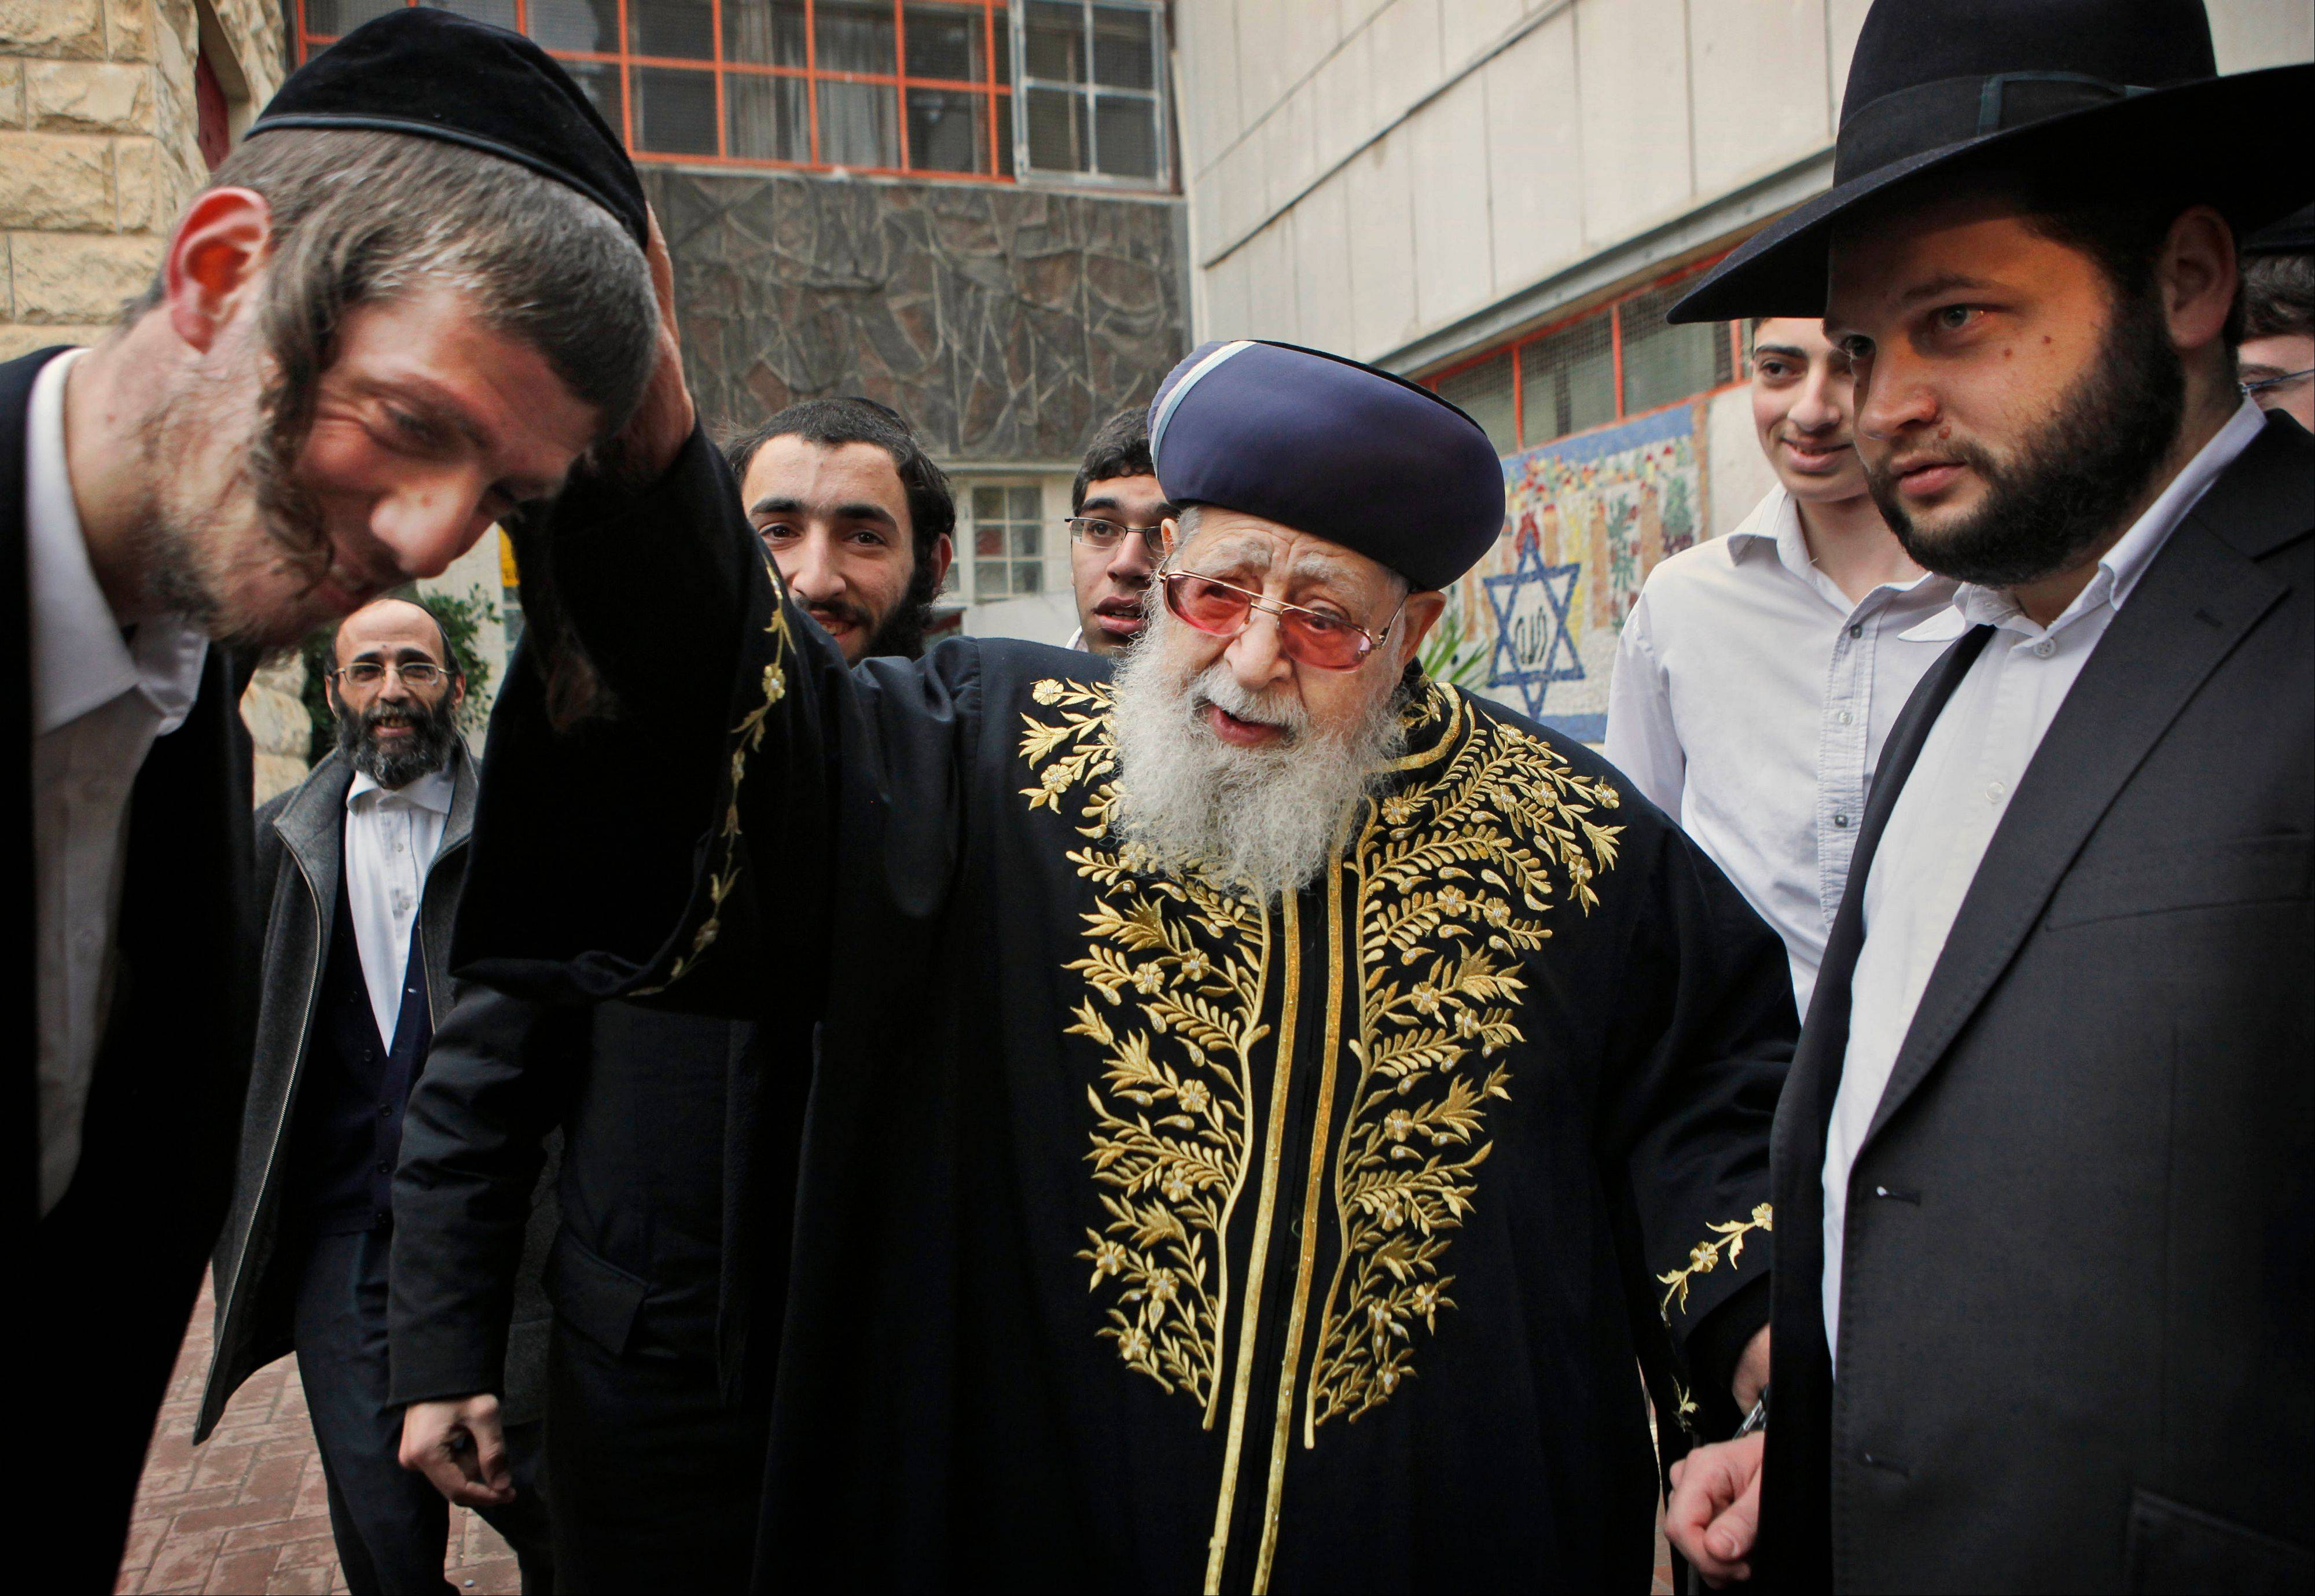 Associated Press/Feb. 10, 2009 Rabbi Ovadia Yosef, center, Jewish spiritual leader of Israel's Shas party, blesses a man after casting his ballot at a polling station in Jerusalem.